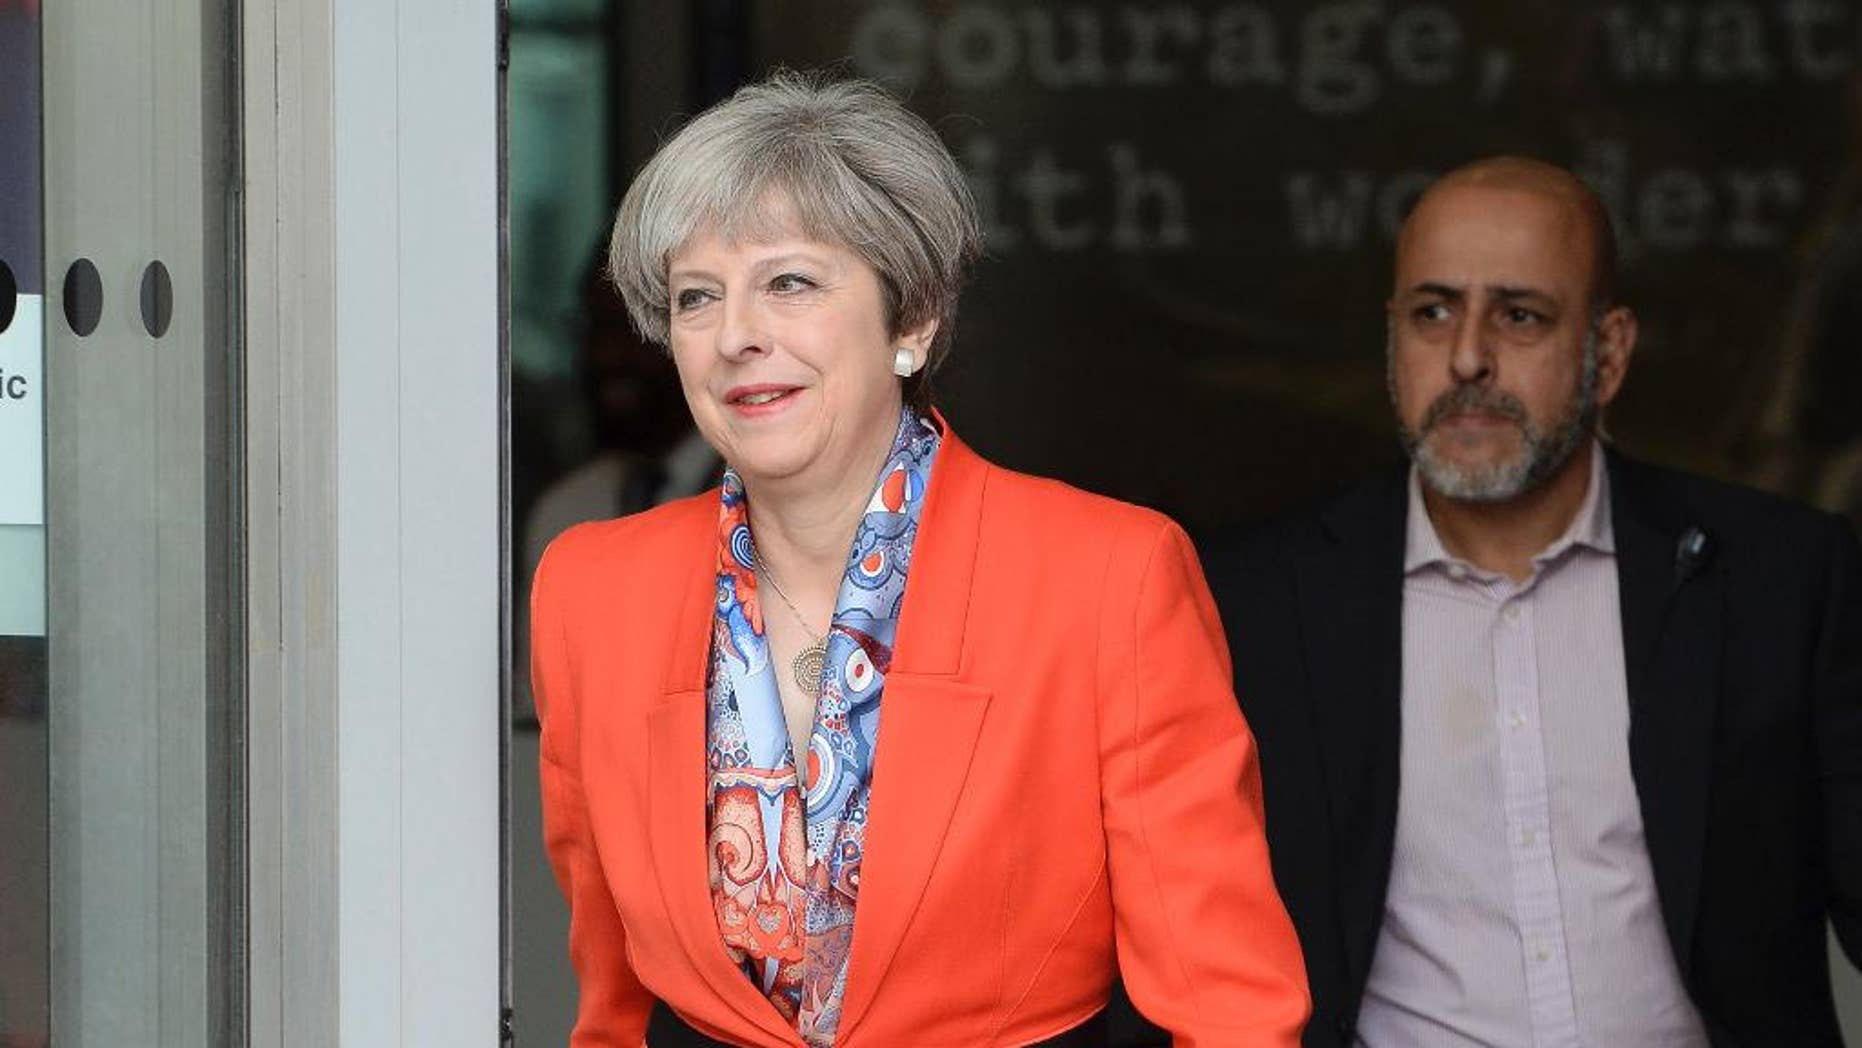 Prime Minister Theresa May leaves BBC studios in London after appearing on a morning show Sunday April 30, 2017. Britain goes to the polls for a General Election on upcoming June 8. ( John Stillwell/PA via AP)